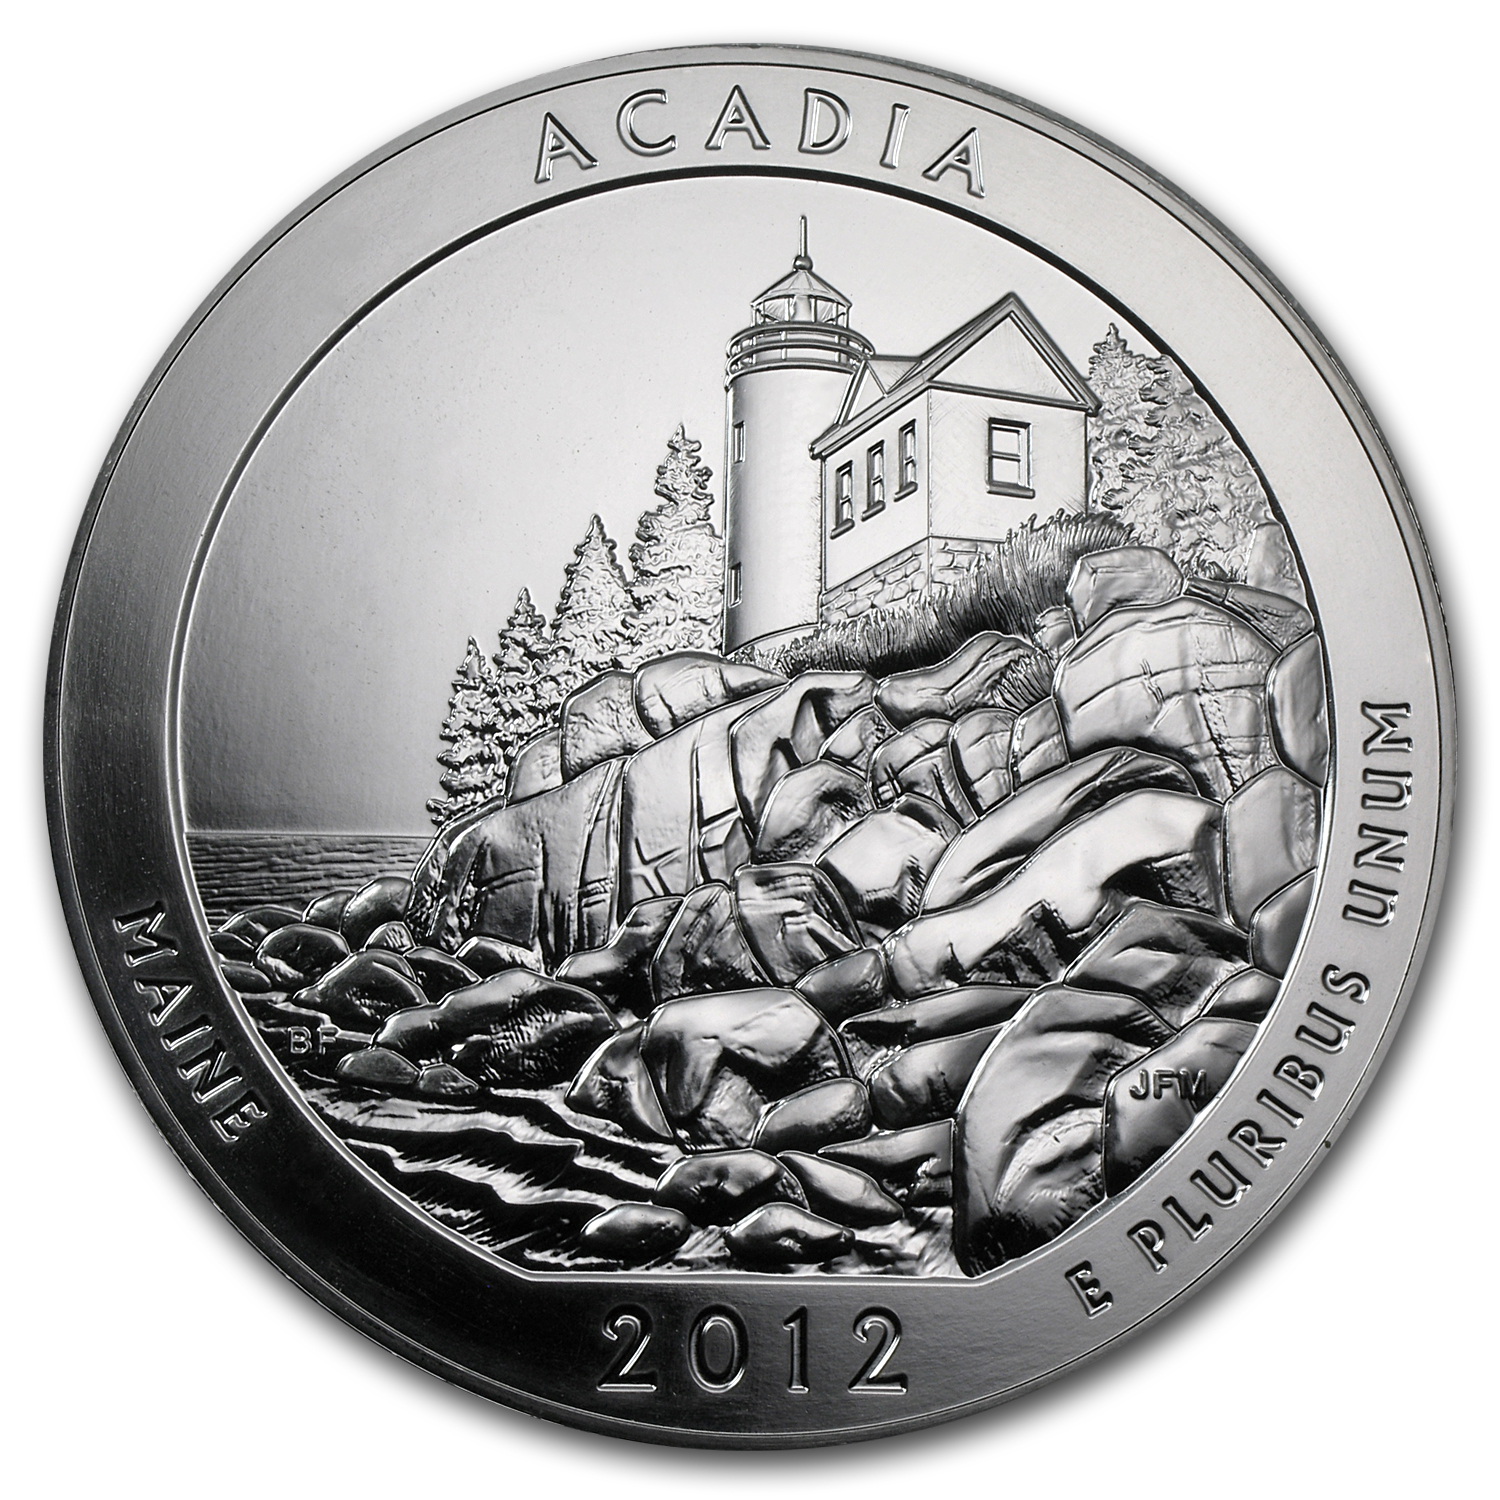 2012 5 oz Silver ATB - Acadia National Park, Maine